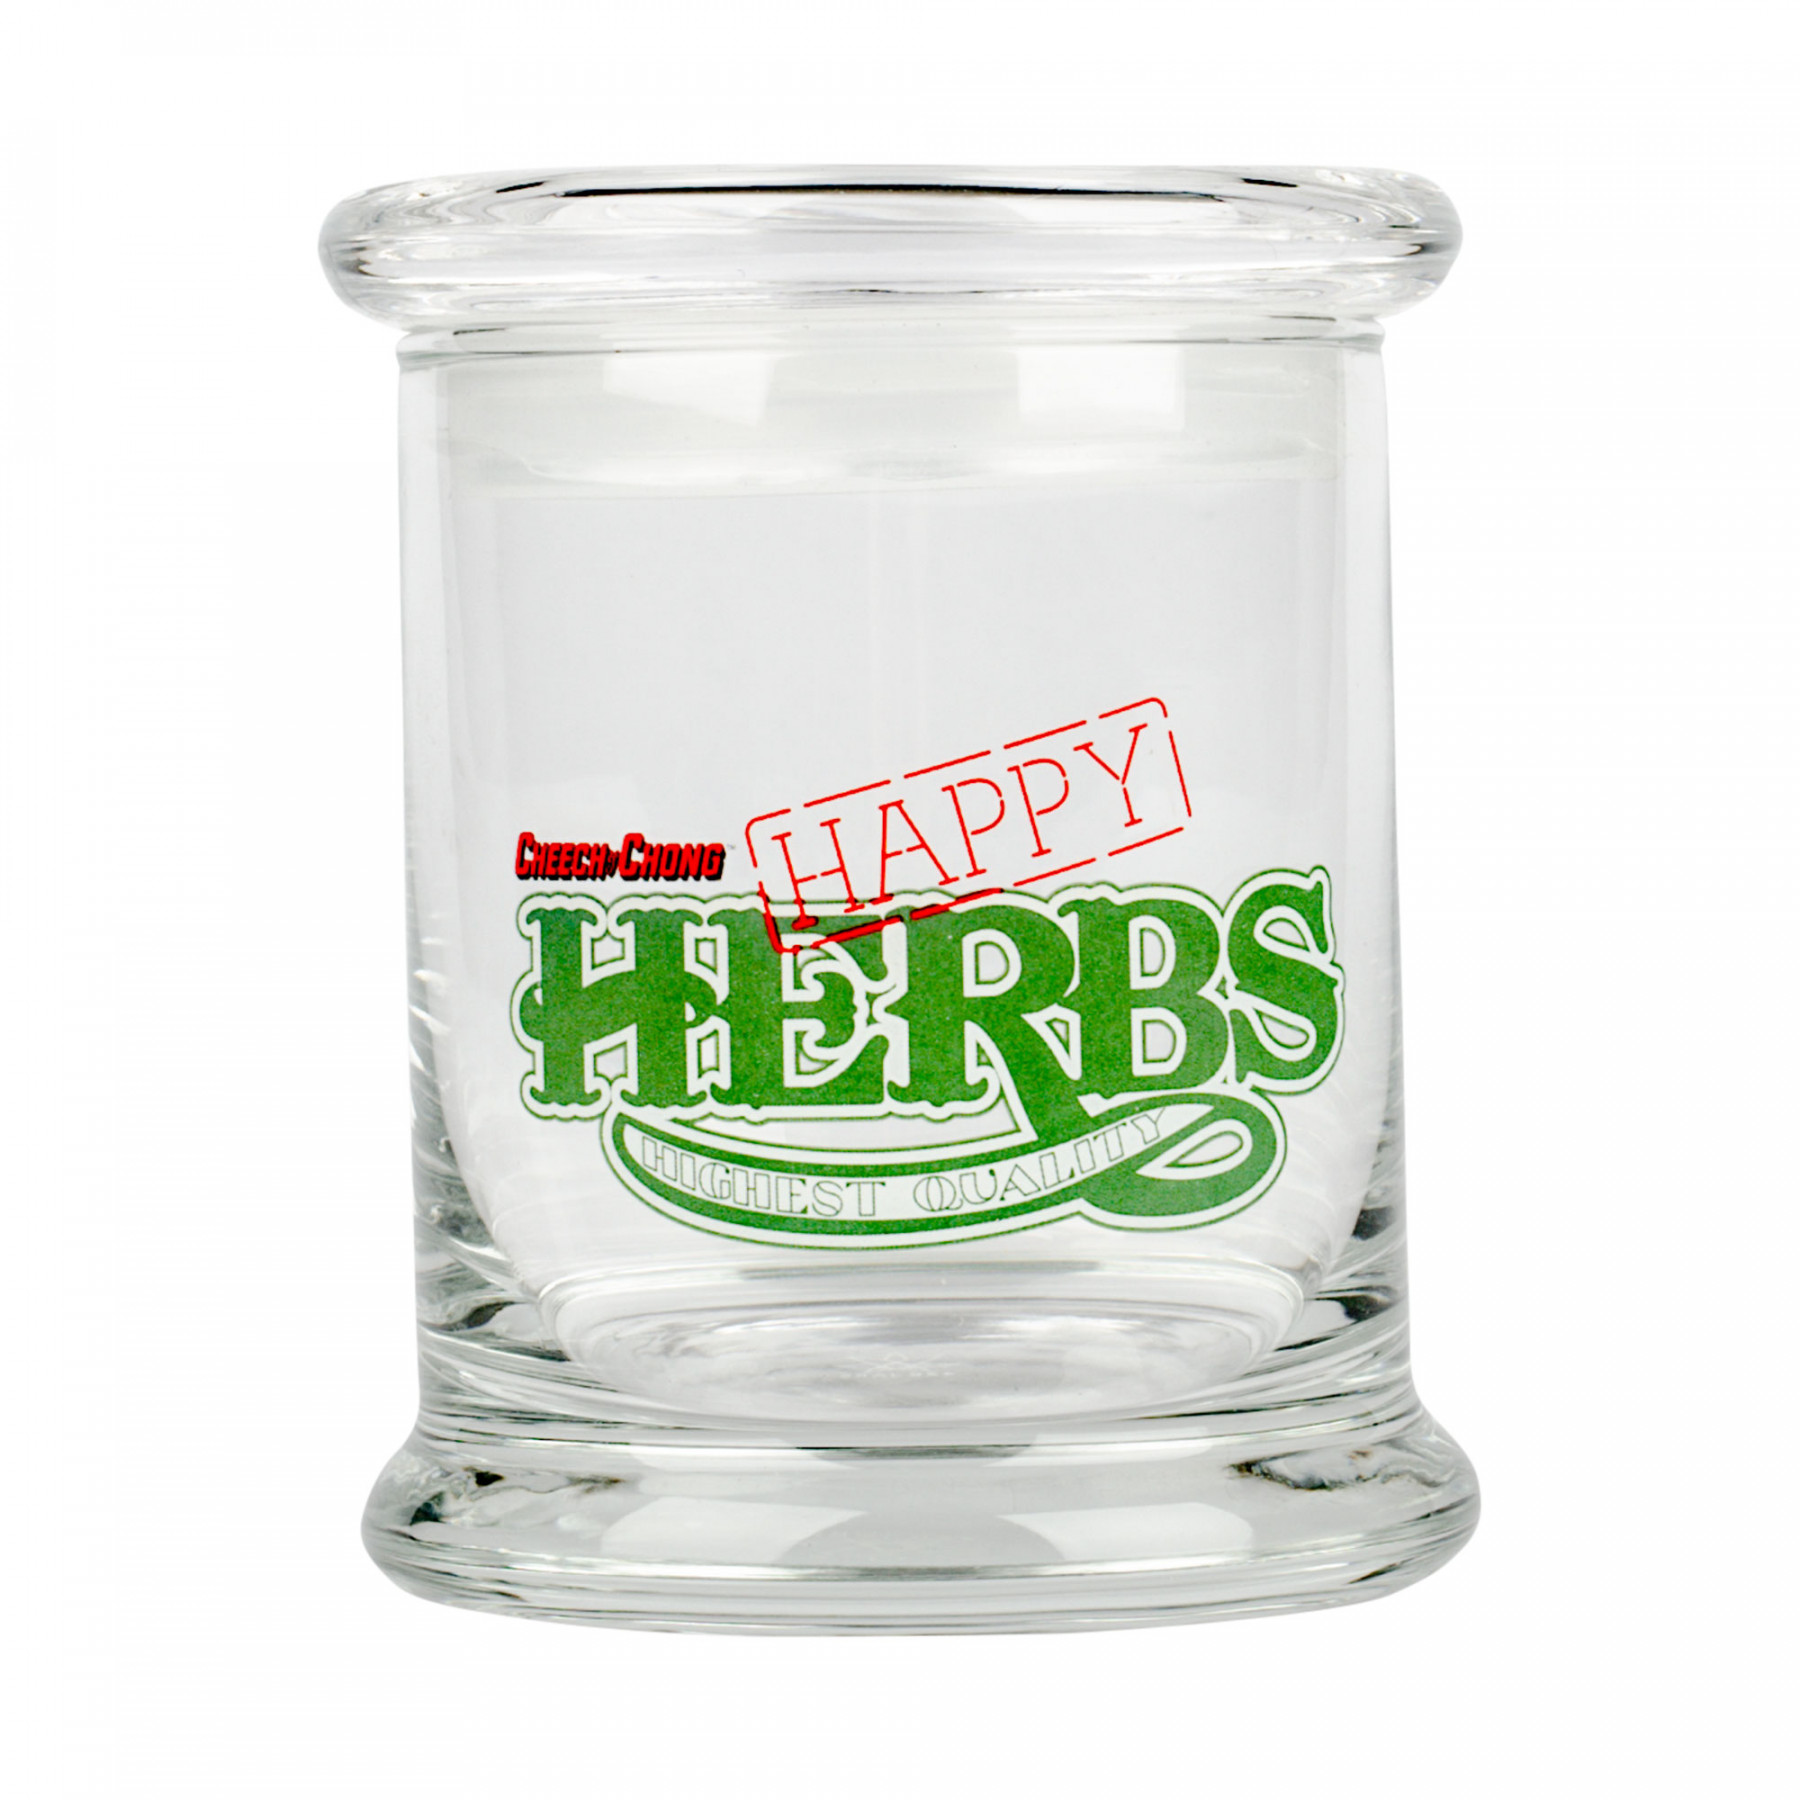 Cheech & Chong™ Glass Happy Herbs Pop Top Jar